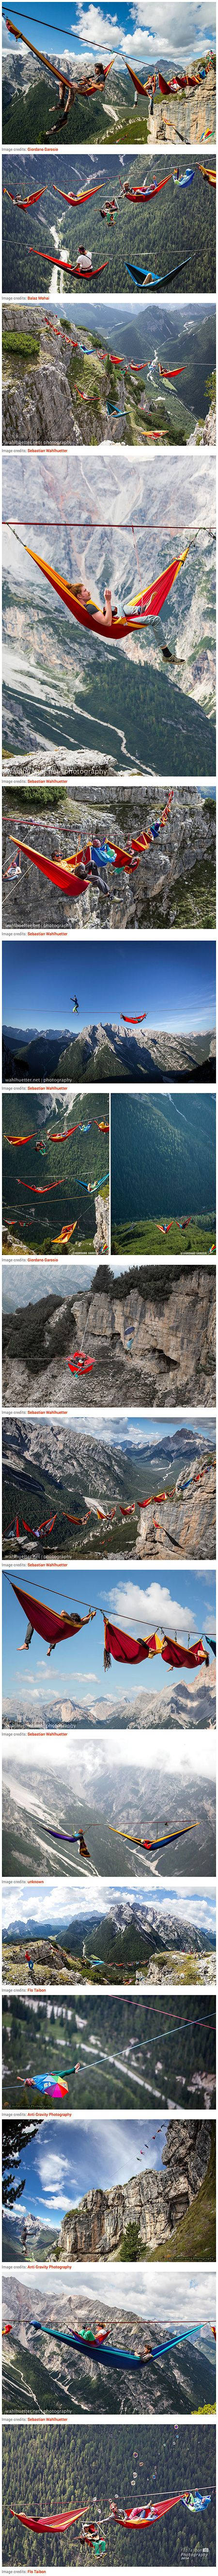 """The International Highline Meeting festival seems like one of the chillest festivals we've ever heard of, but it also might be one of the most terrifying – attendees spend most of their time strung up on tightropes stretched across the Italian Alps in Monte Piana. The attendees call themselves """"slackers"""" because of the slacklines they balance themselves on. This extreme sport differs from tightrope walking in that the rope has a slightly flattened shaped and has slack, meaning that it can…"""